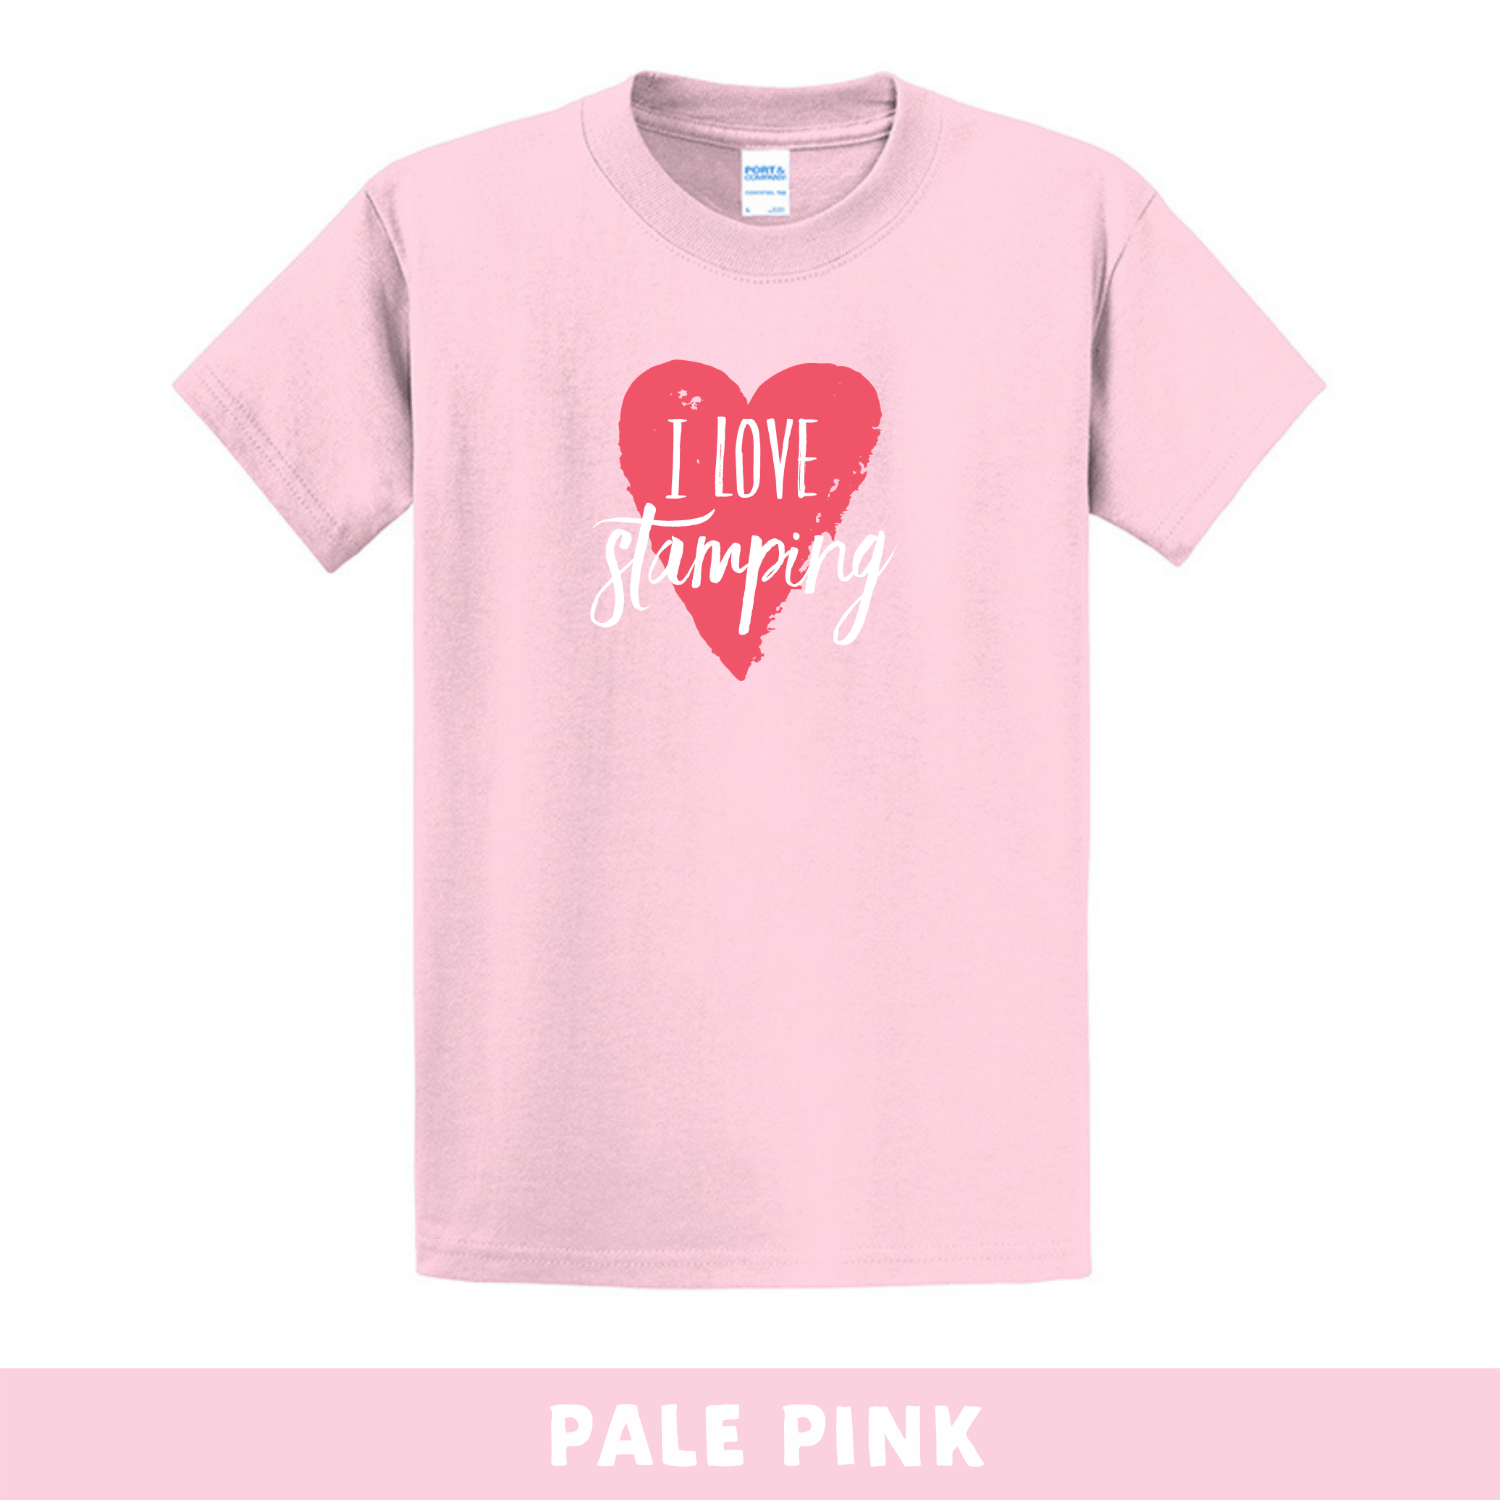 Pale Pink - Crew Neck Unisex T-Shirt - I Love Stamping